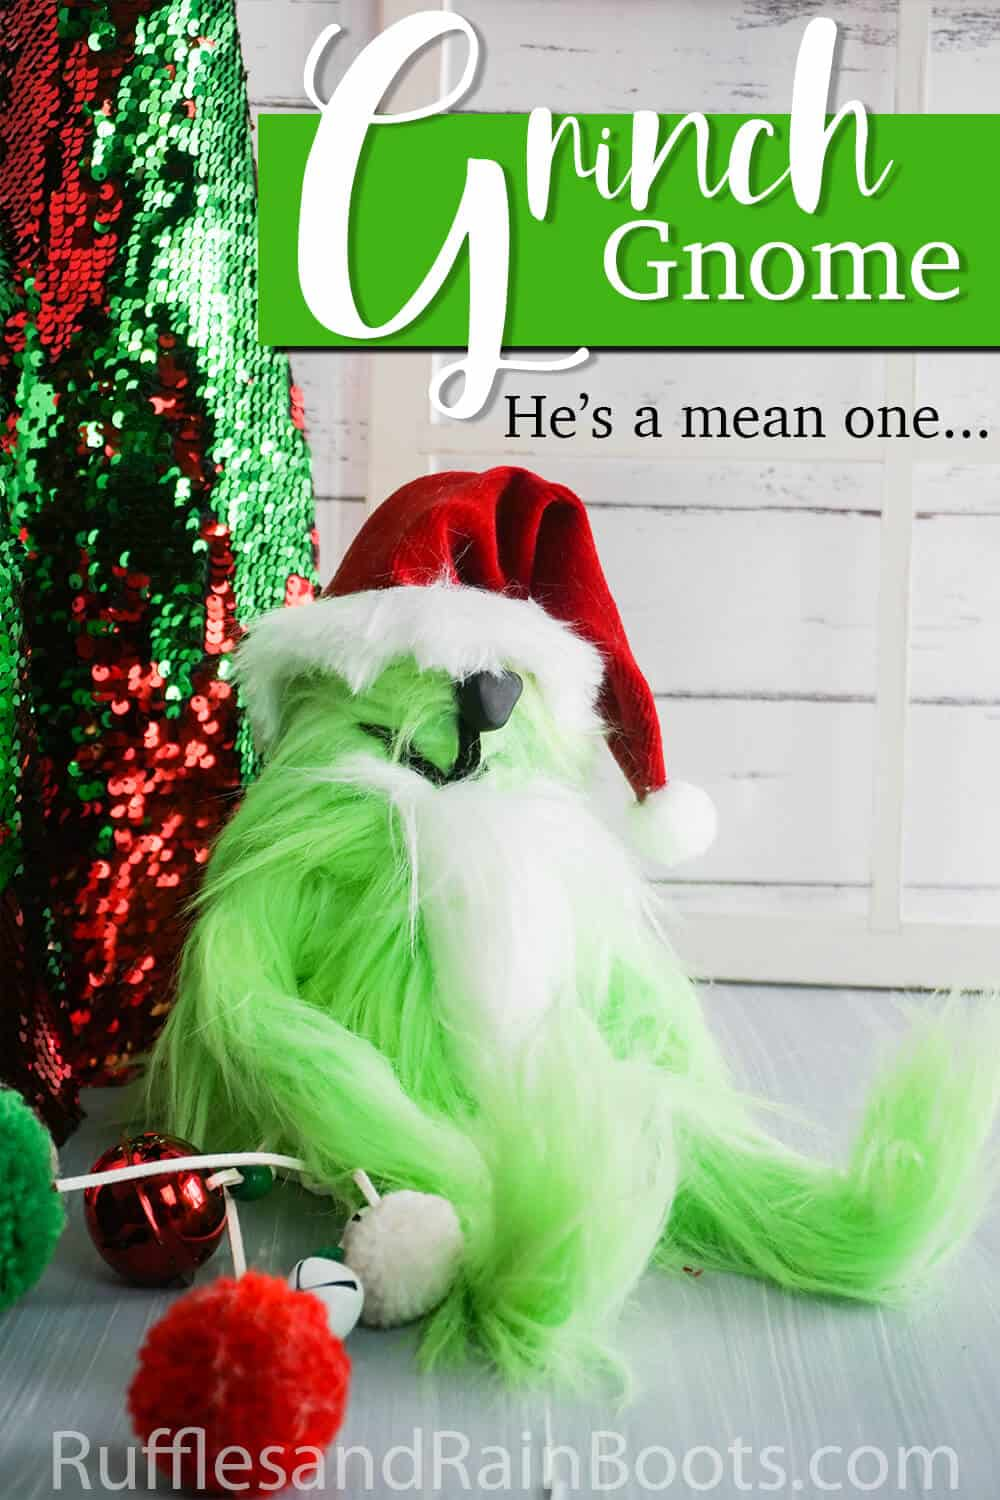 side view of grinch gnome with text which reads grinch gnome he's a mean one